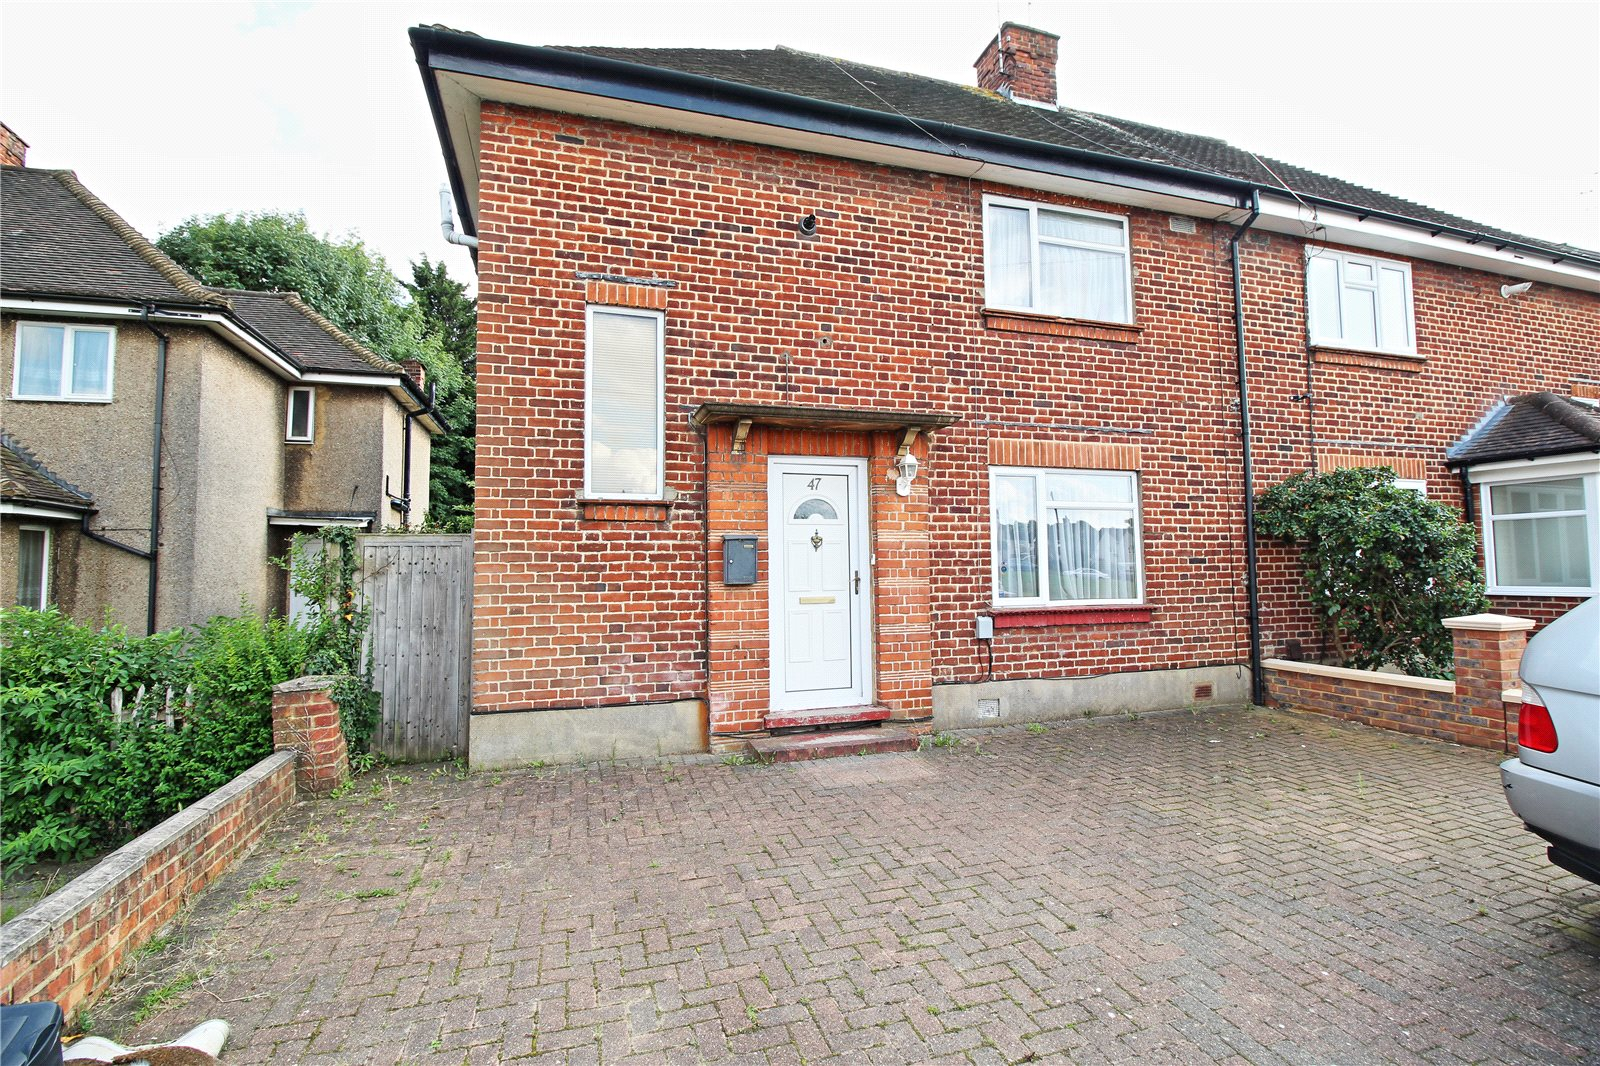 3 Bedrooms Semi Detached House for sale in Beatty Road Stanmore Middlesex HA7